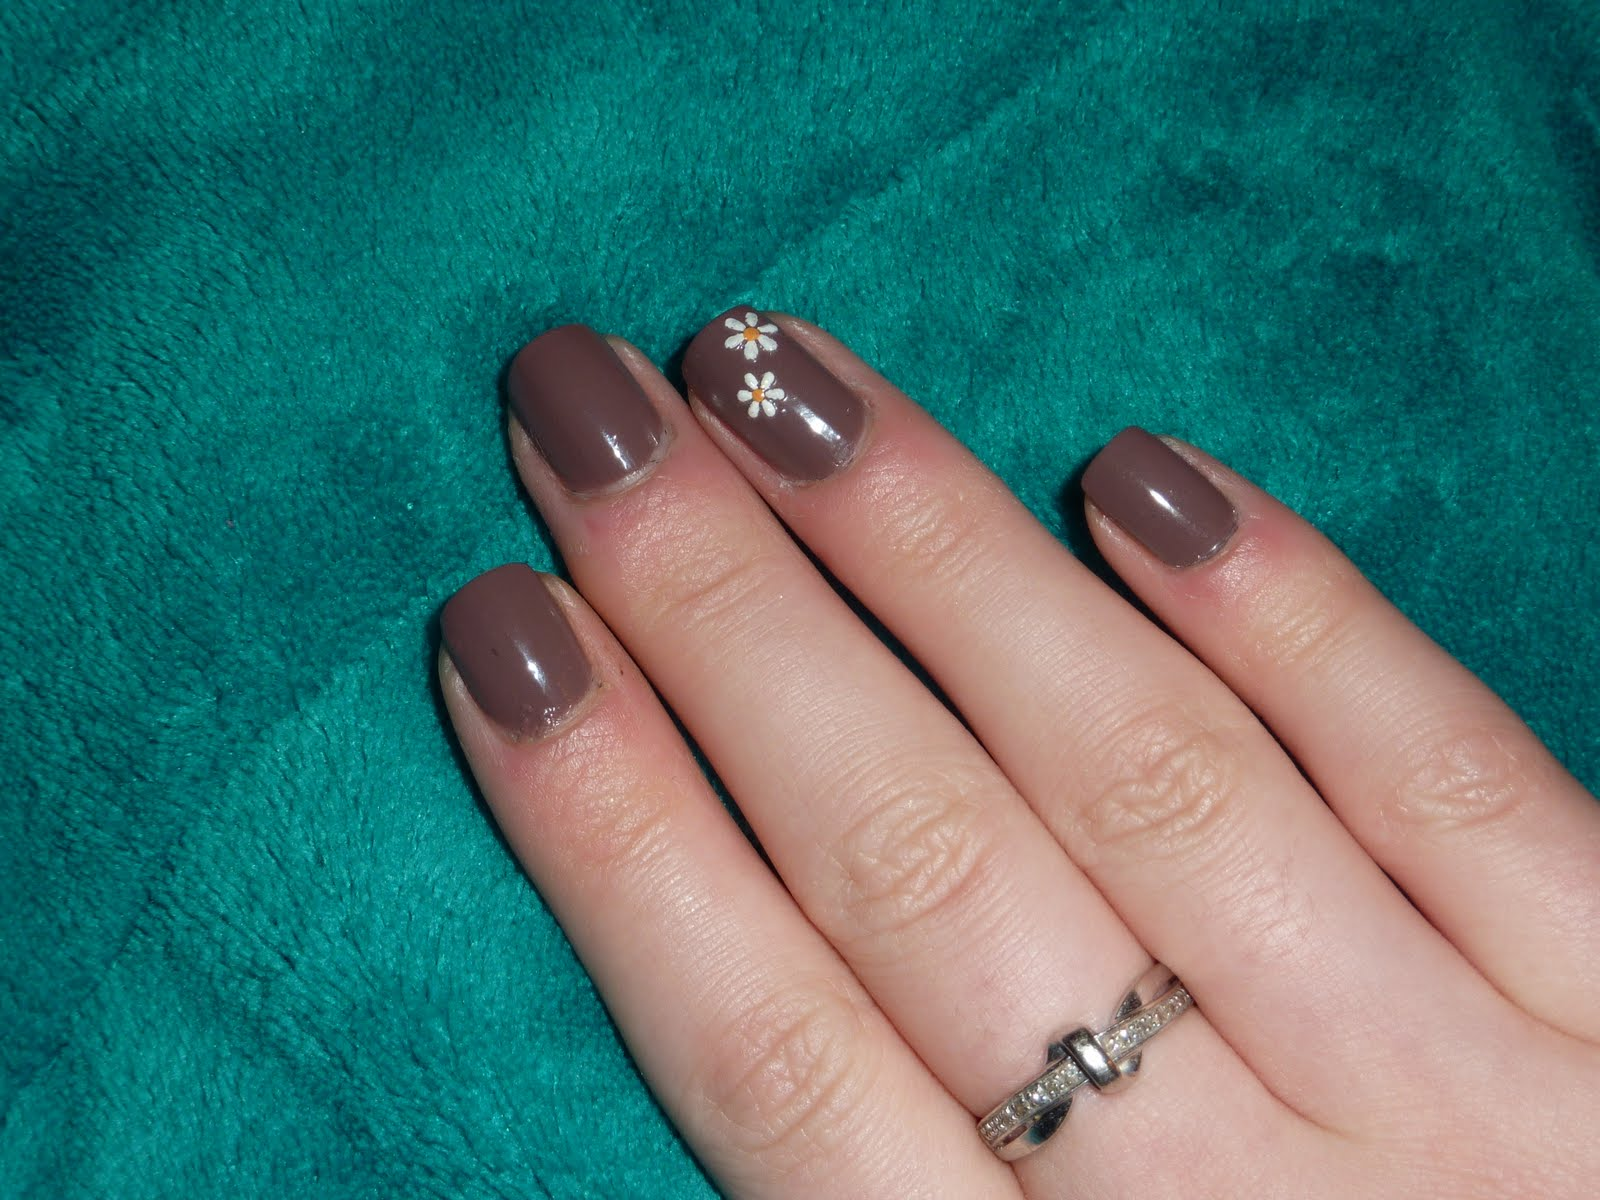 Sophie Jenner: Nails Inc Jermyn Street and Daisy Nail Art NOTD: